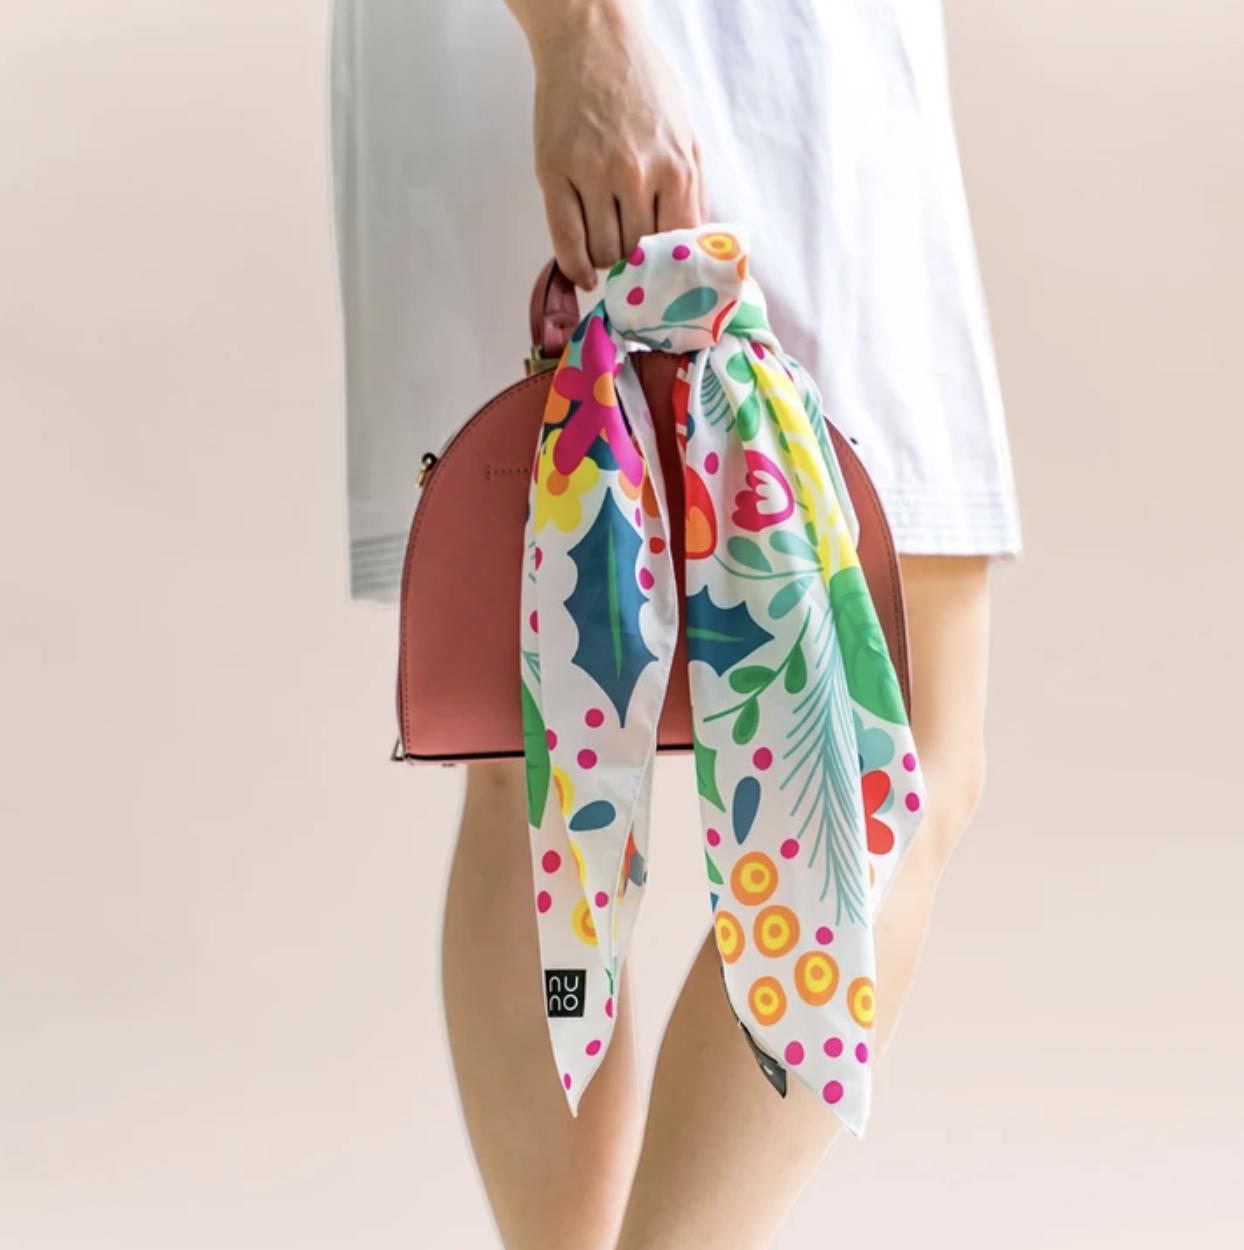 The colorful floral silk scarf tied on a handbag